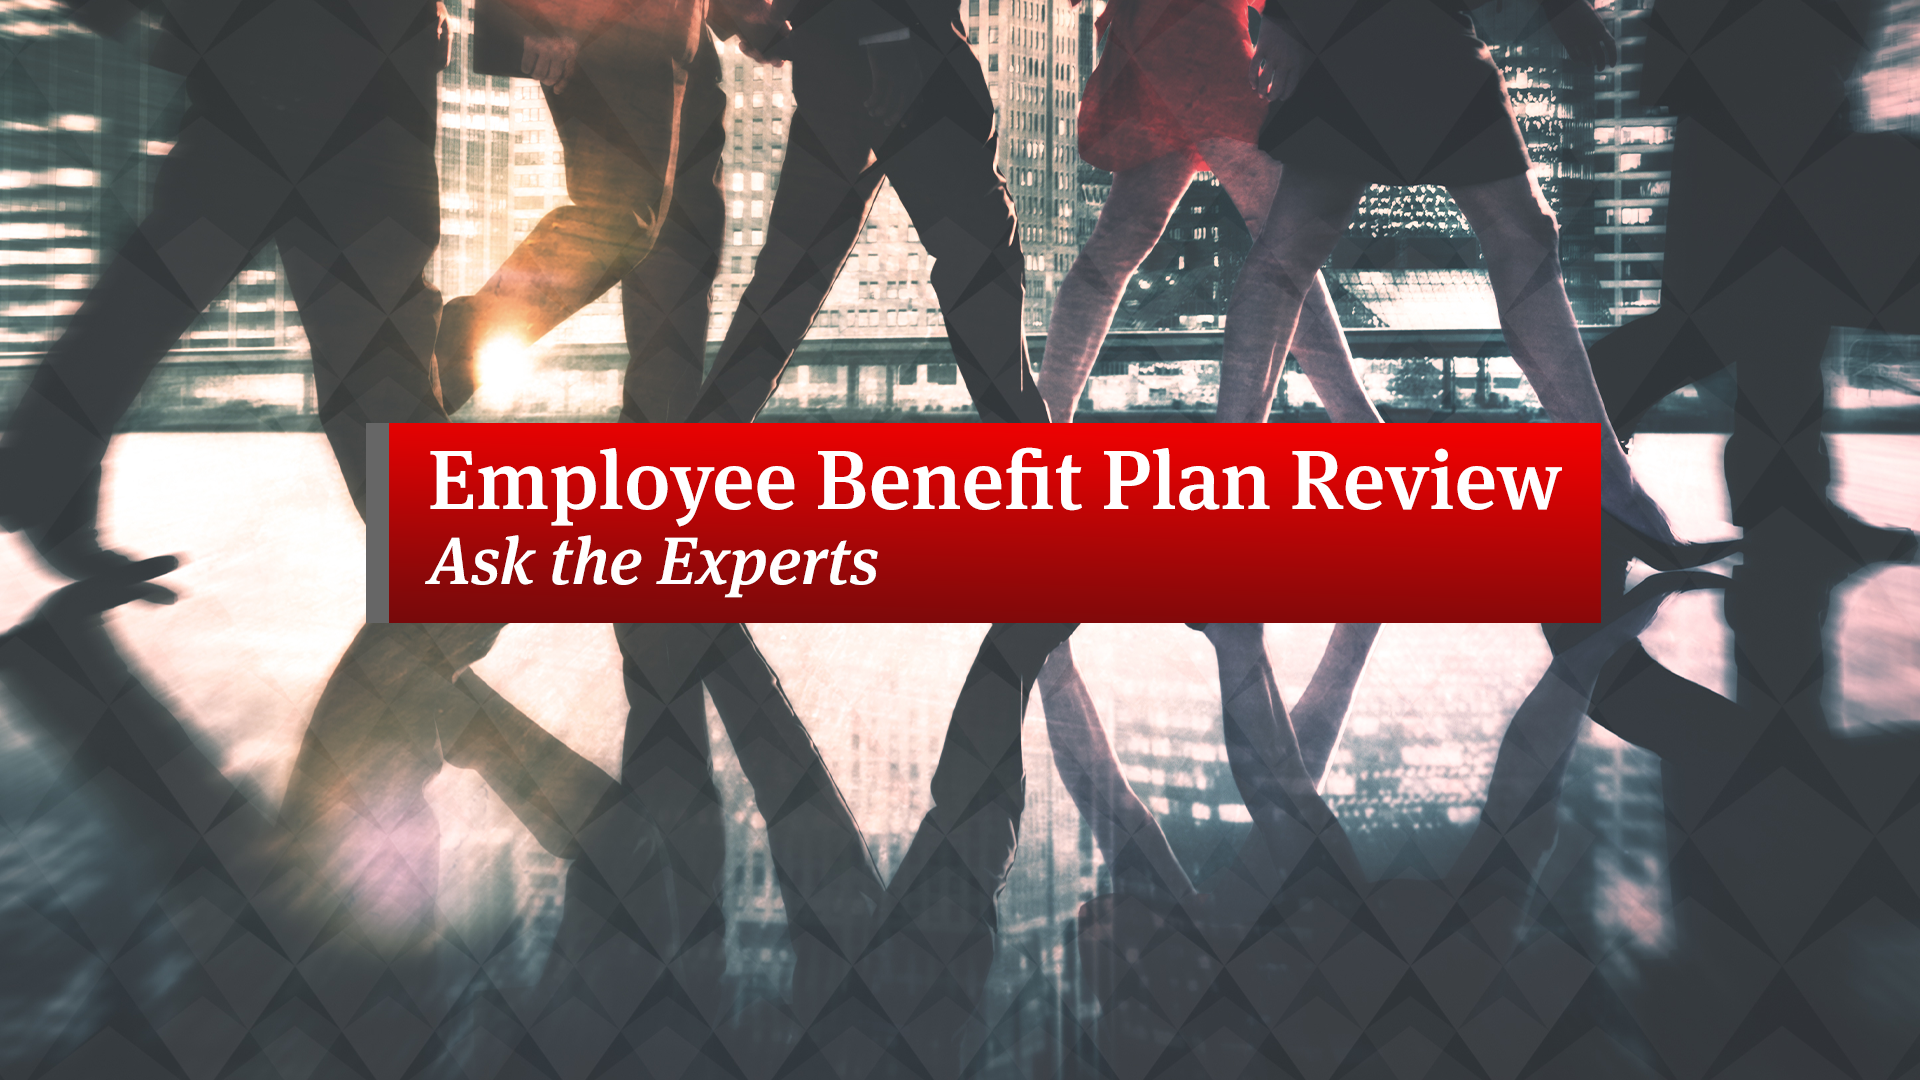 Employee Benefit Plan Review: Ask the Experts